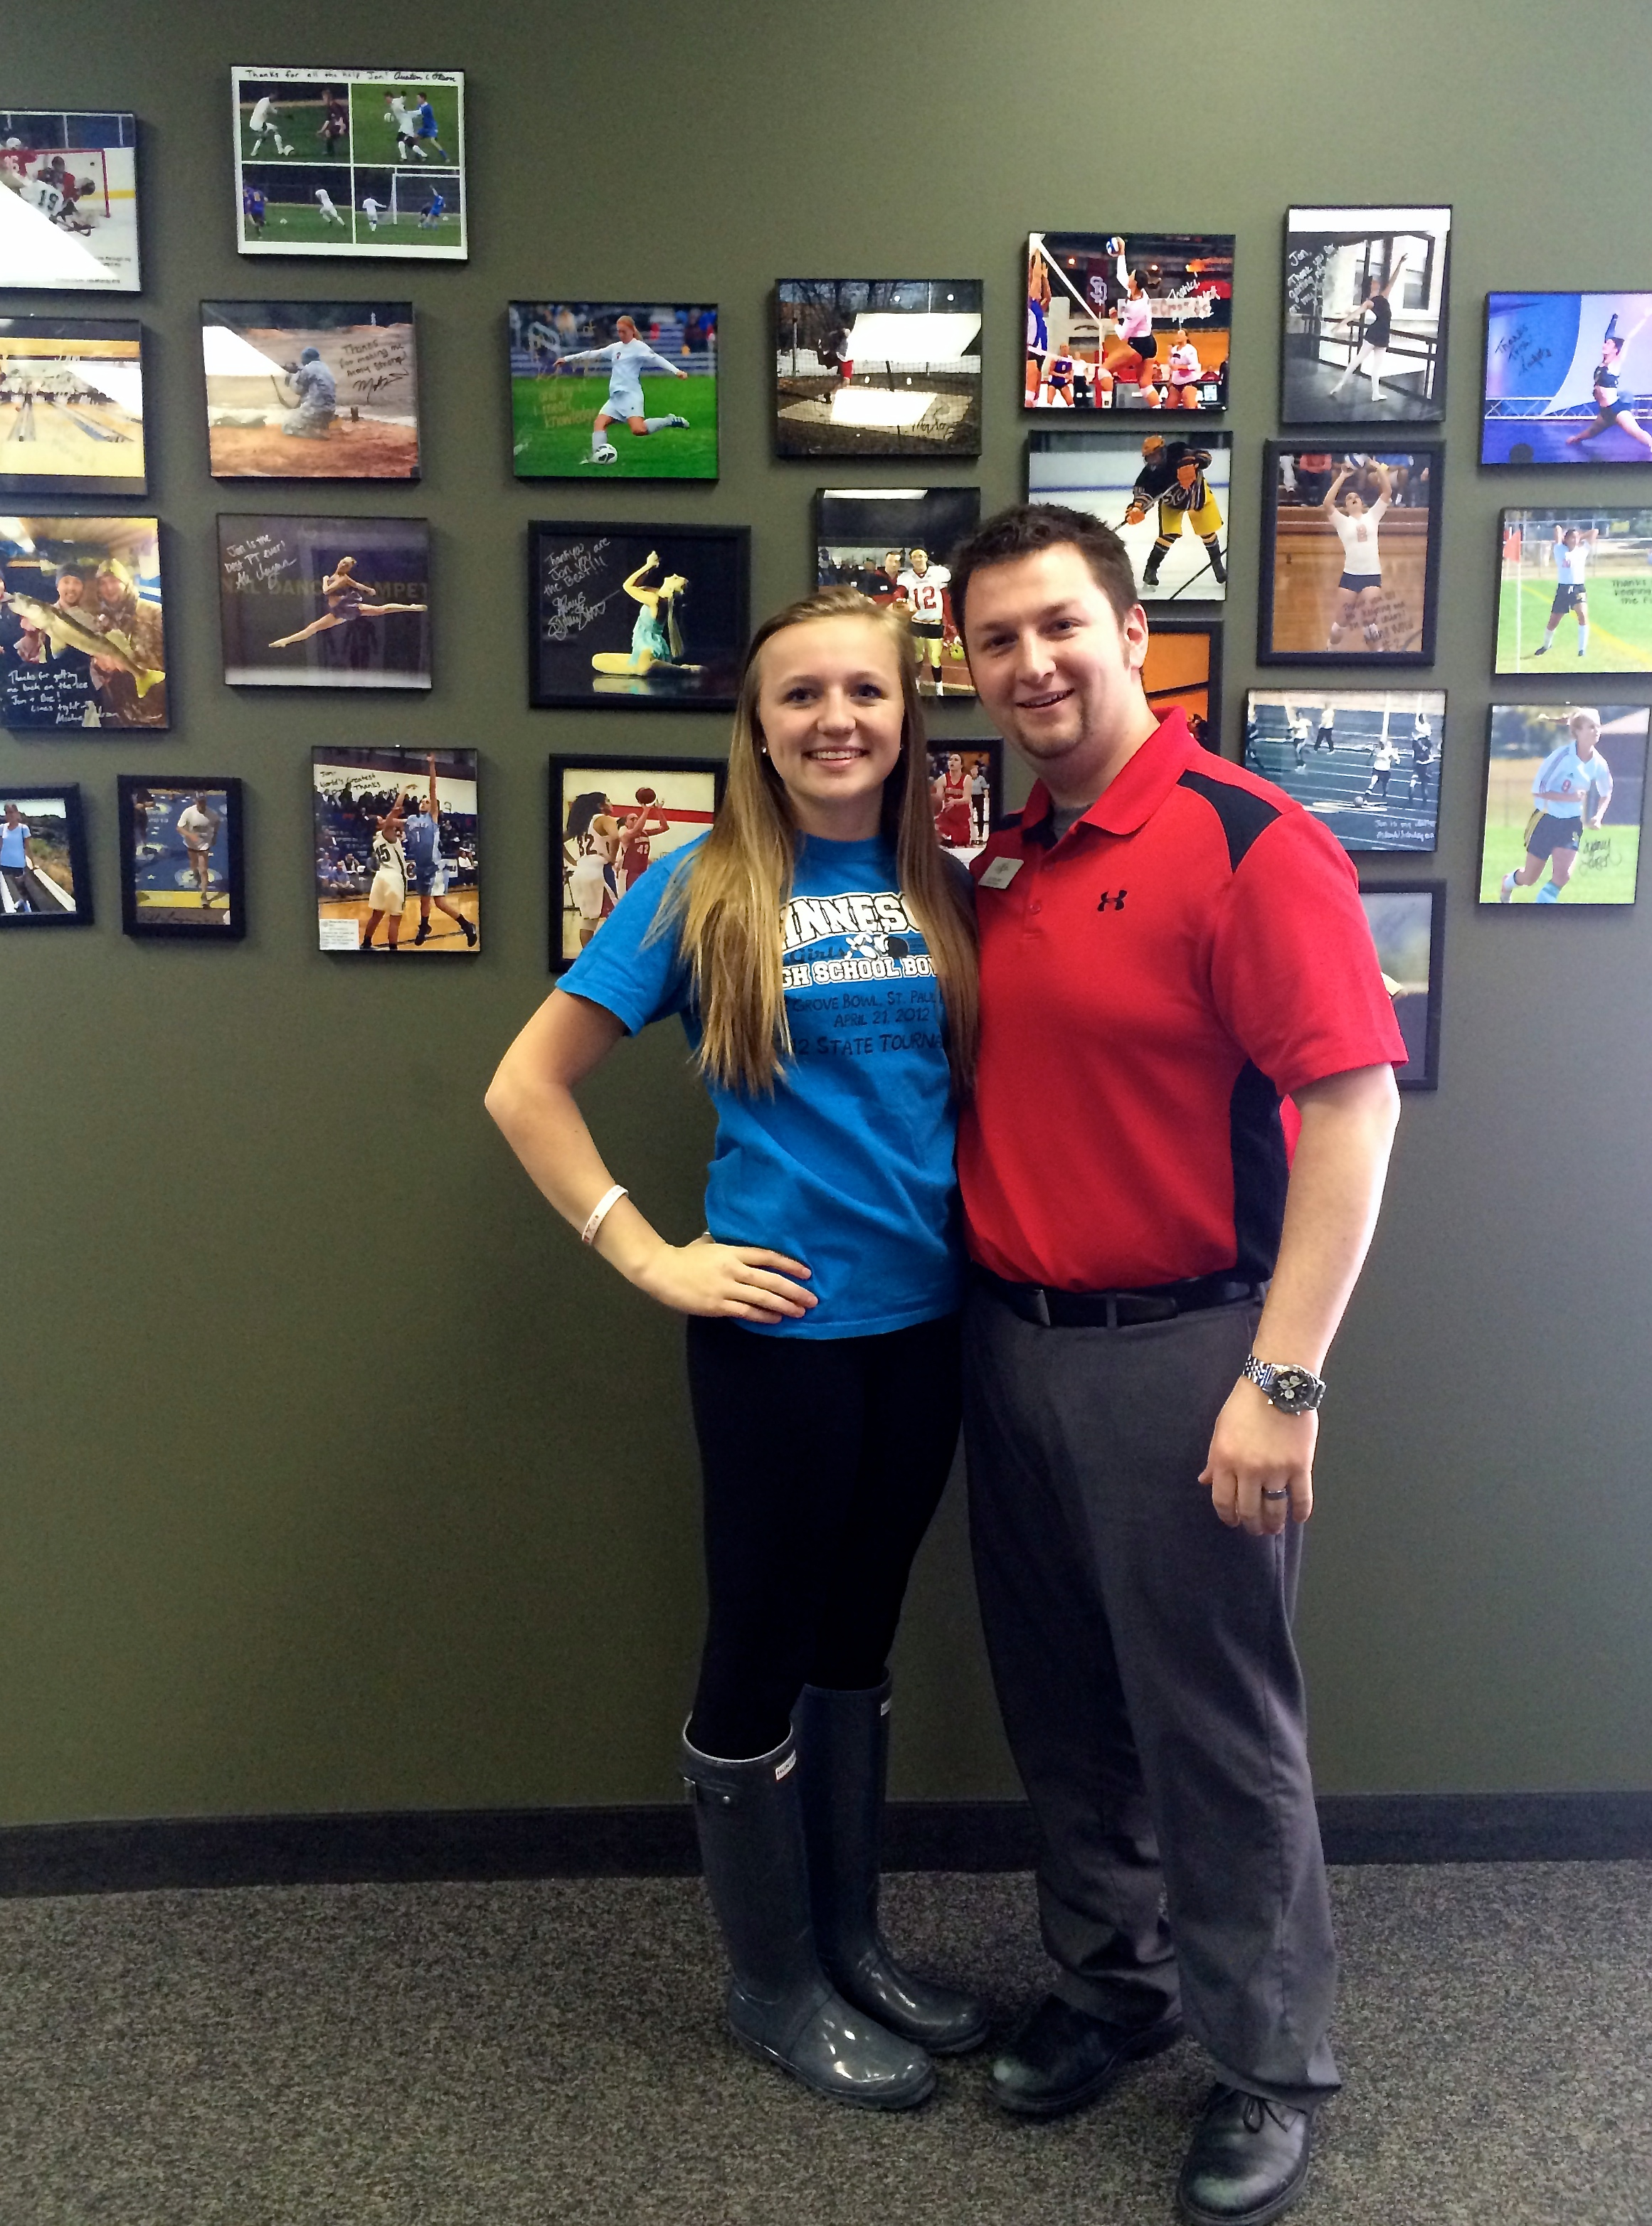 Emily and Jon - OSI Making of a Champion Series Featuring Emily Janisch